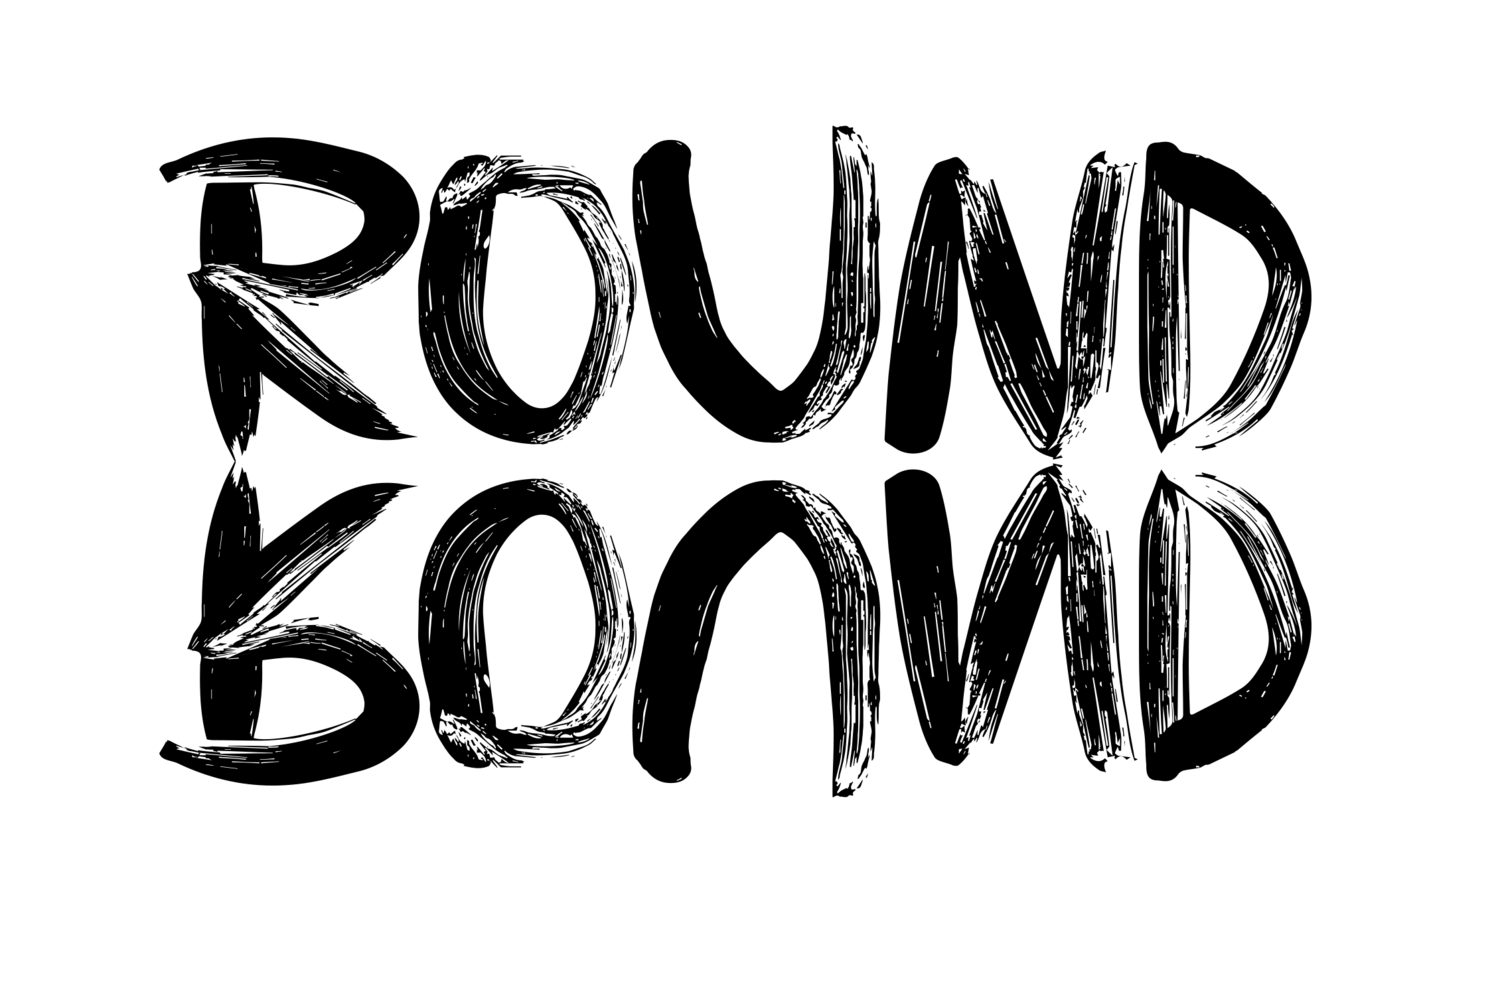 Round_Round_logo_Clear.png